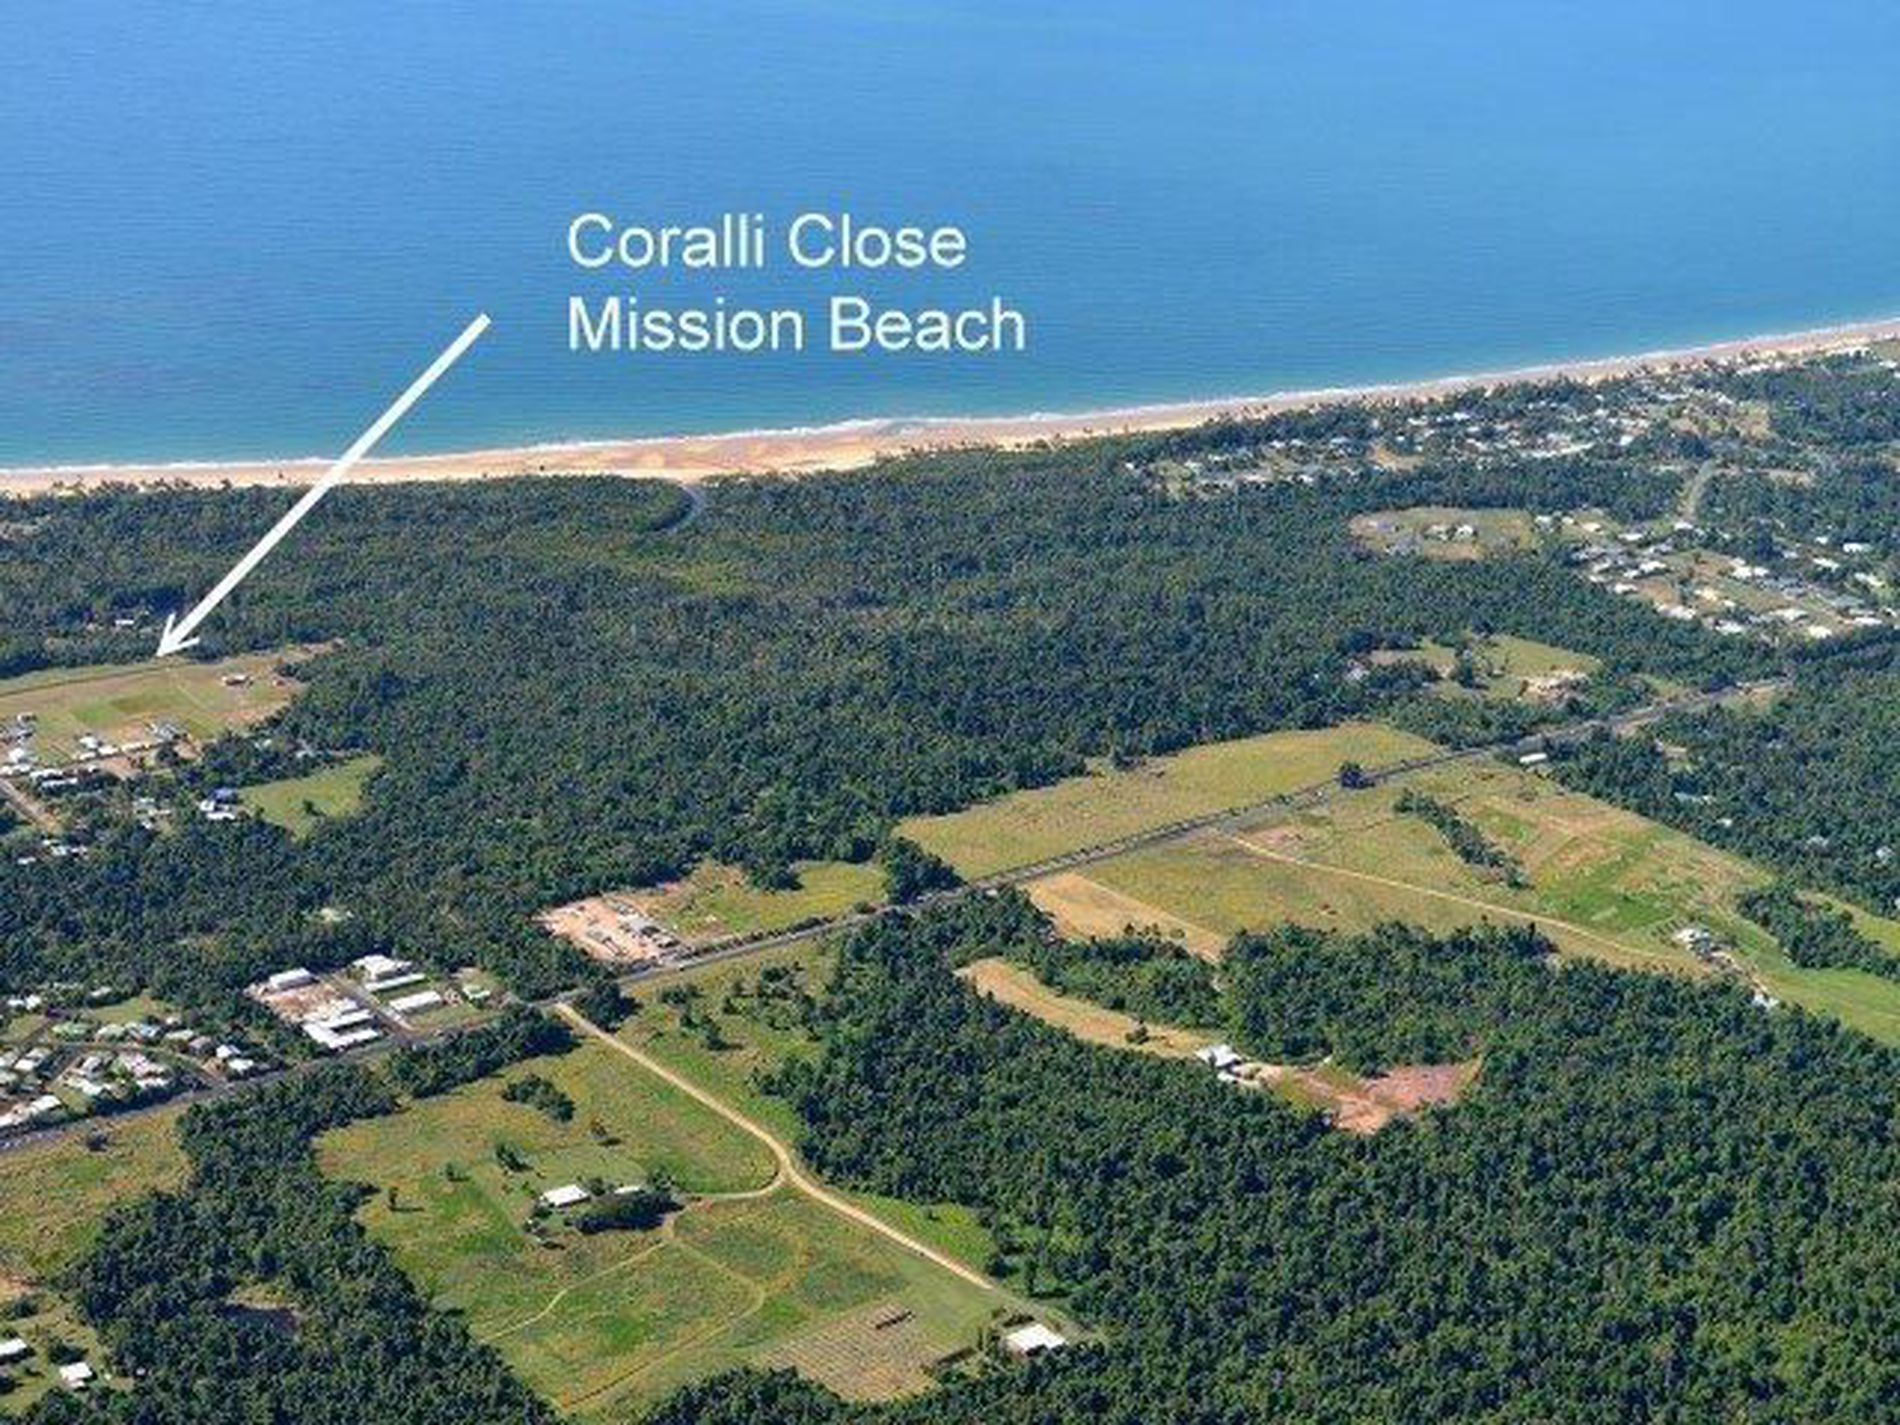 Lot 23, Lot 23 Coralli Close, Mission Beach